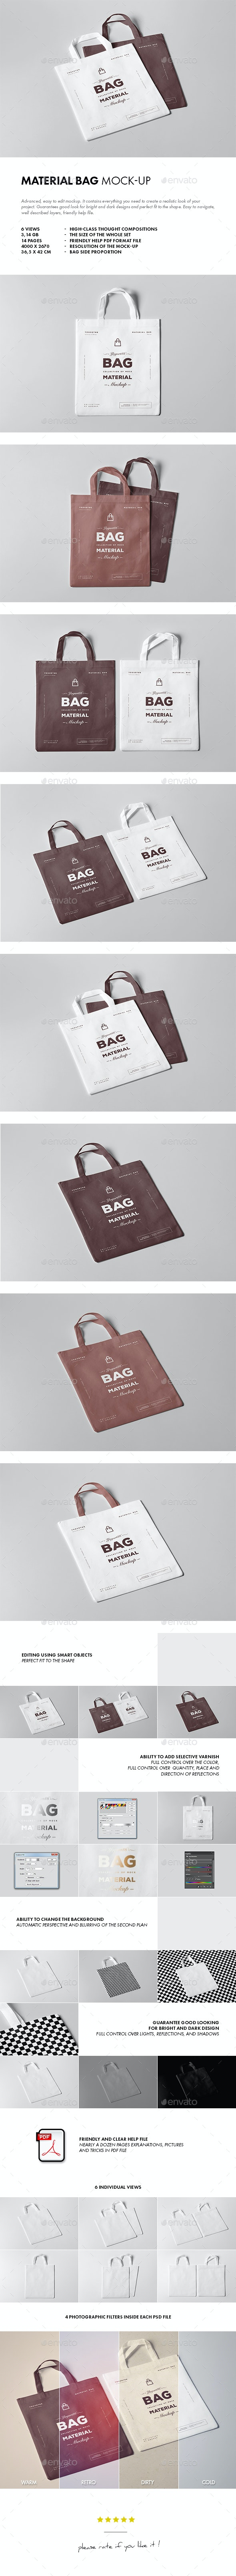 Material Bag Mock-up - Miscellaneous Product Mock-Ups